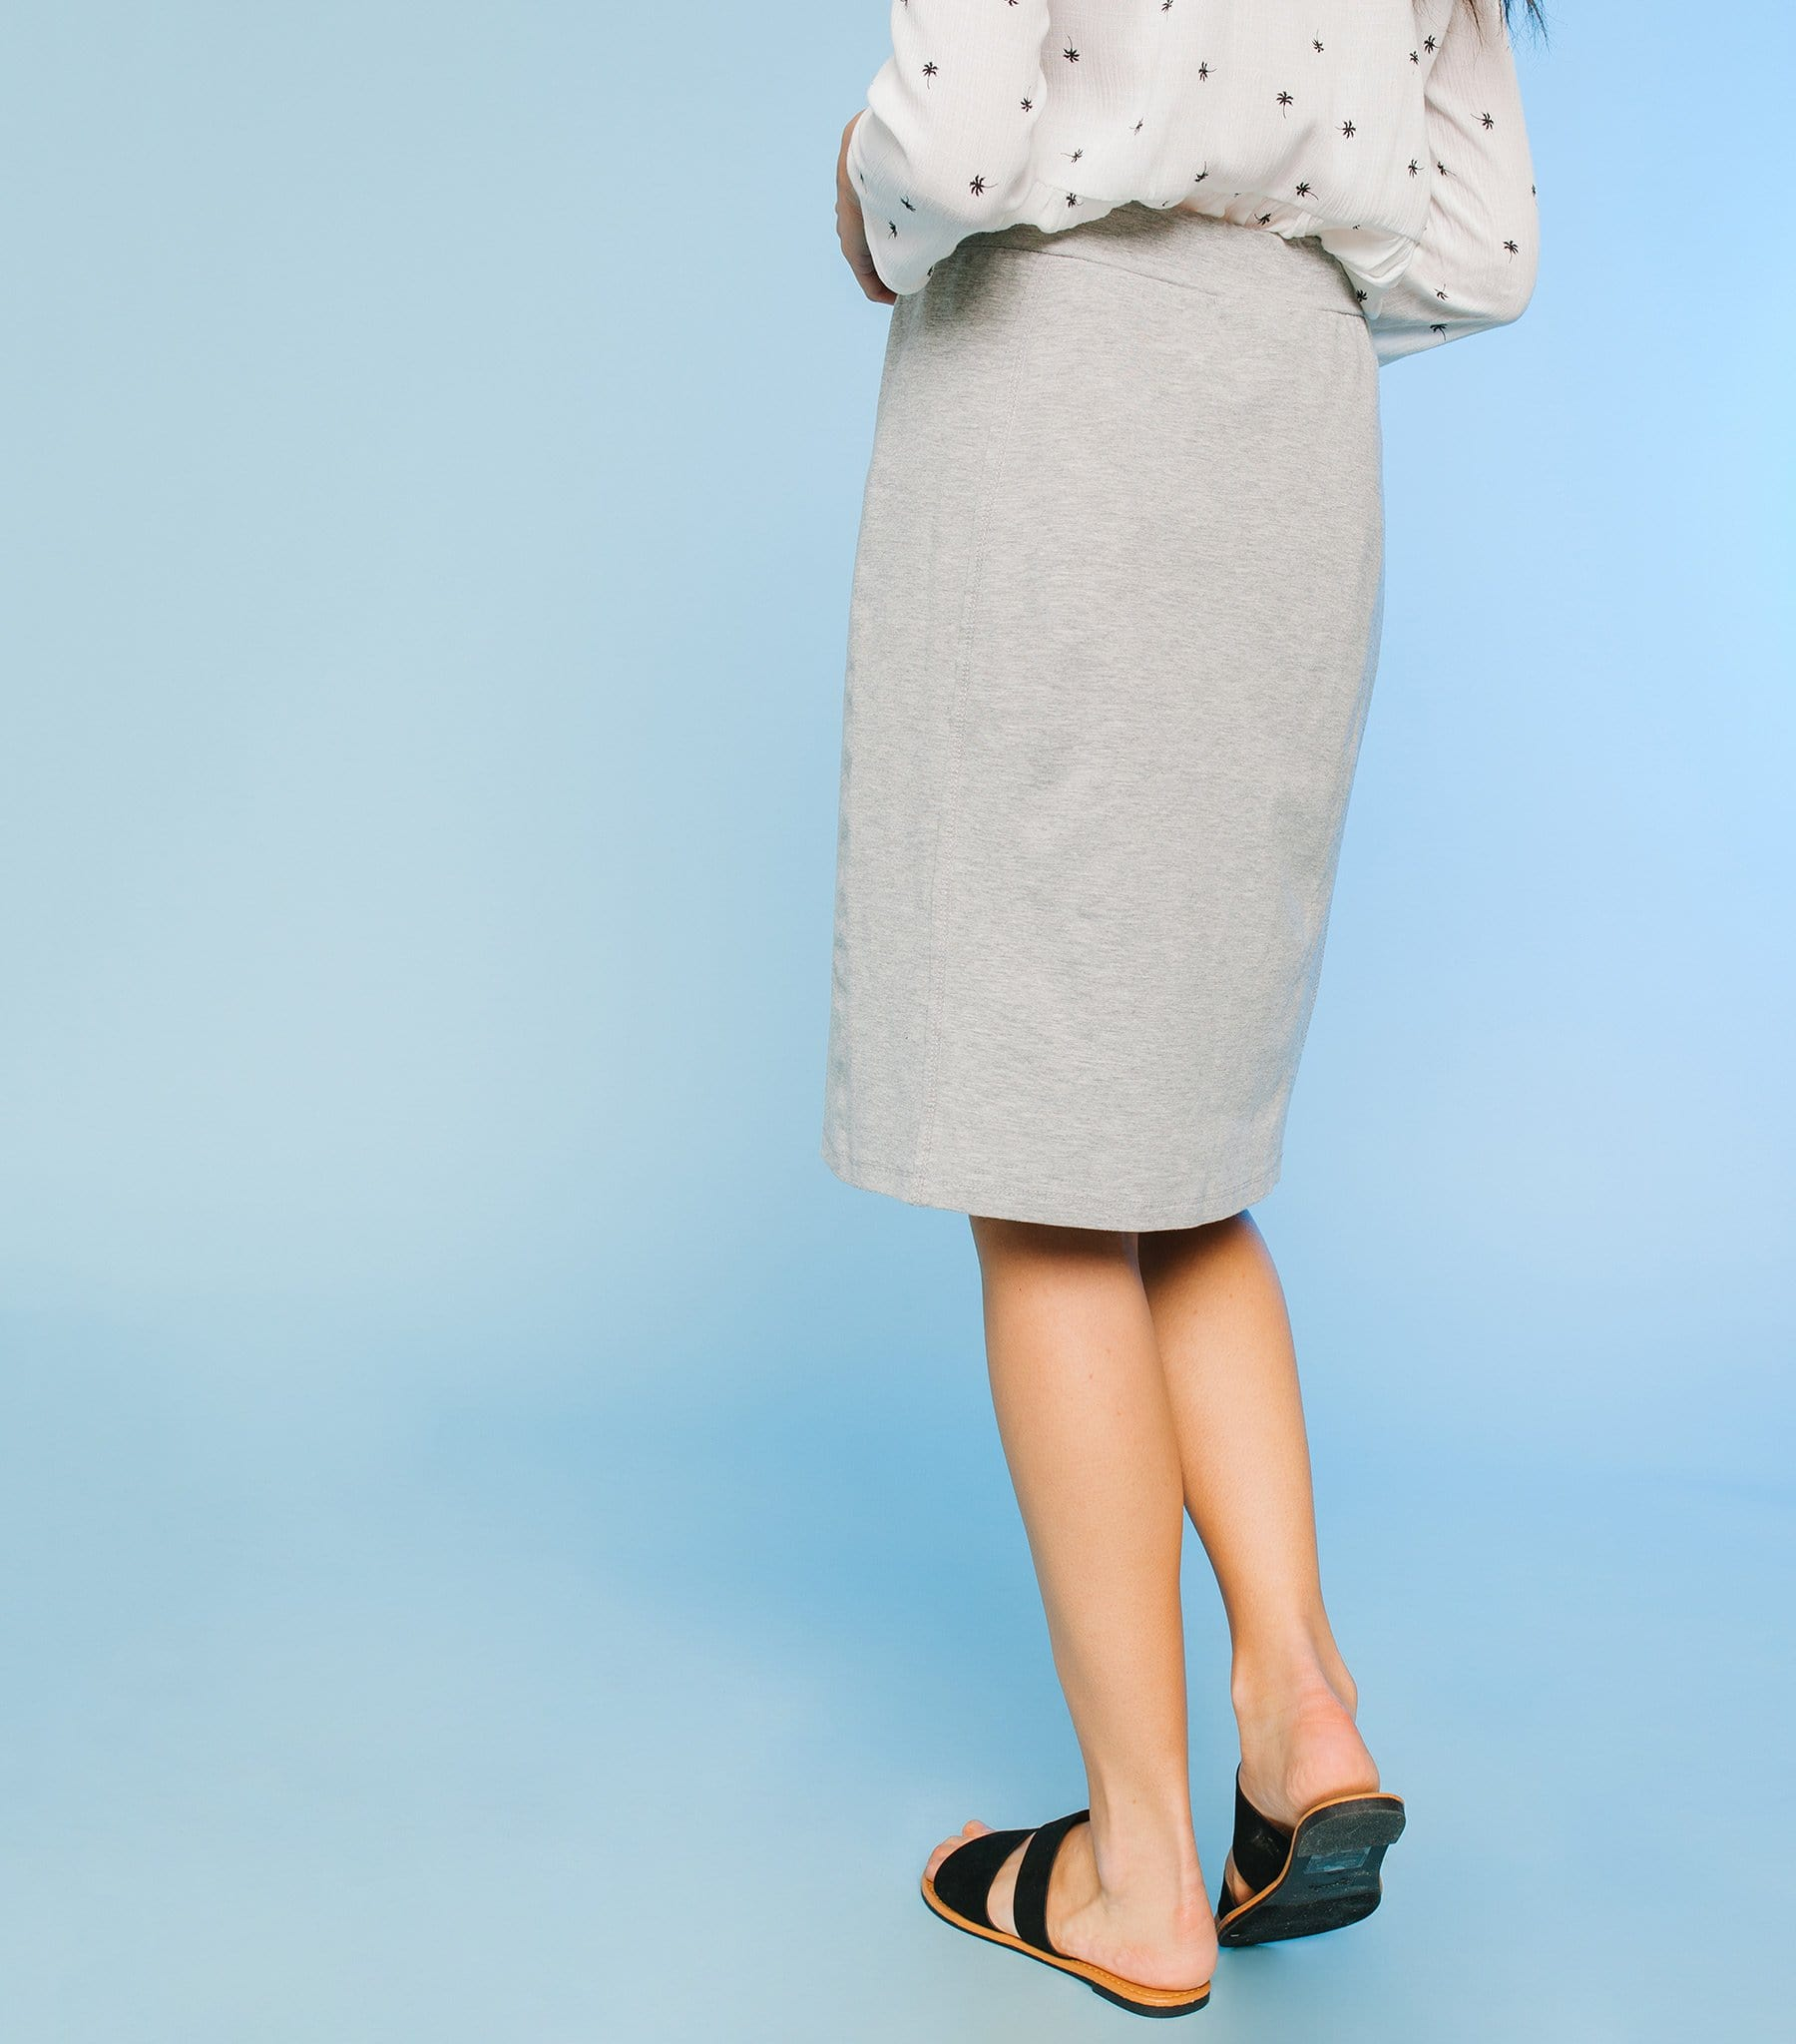 687e4938d2 French Terry Skirt with Drawstrings - Downeast